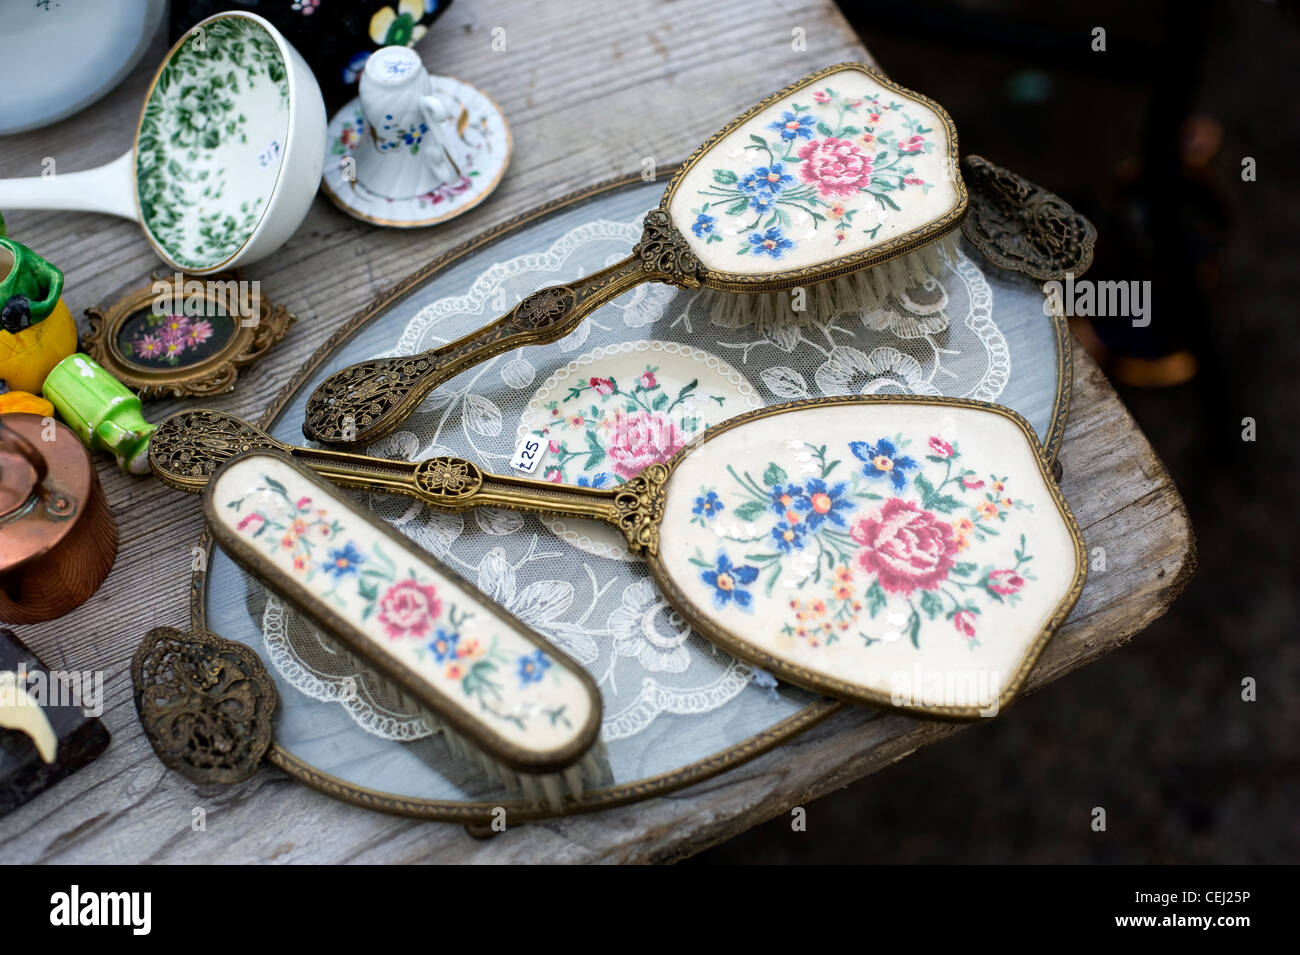 Antique hairbrushes, Ardingly antiques fair, West Sussex, England, UK - Stock Image